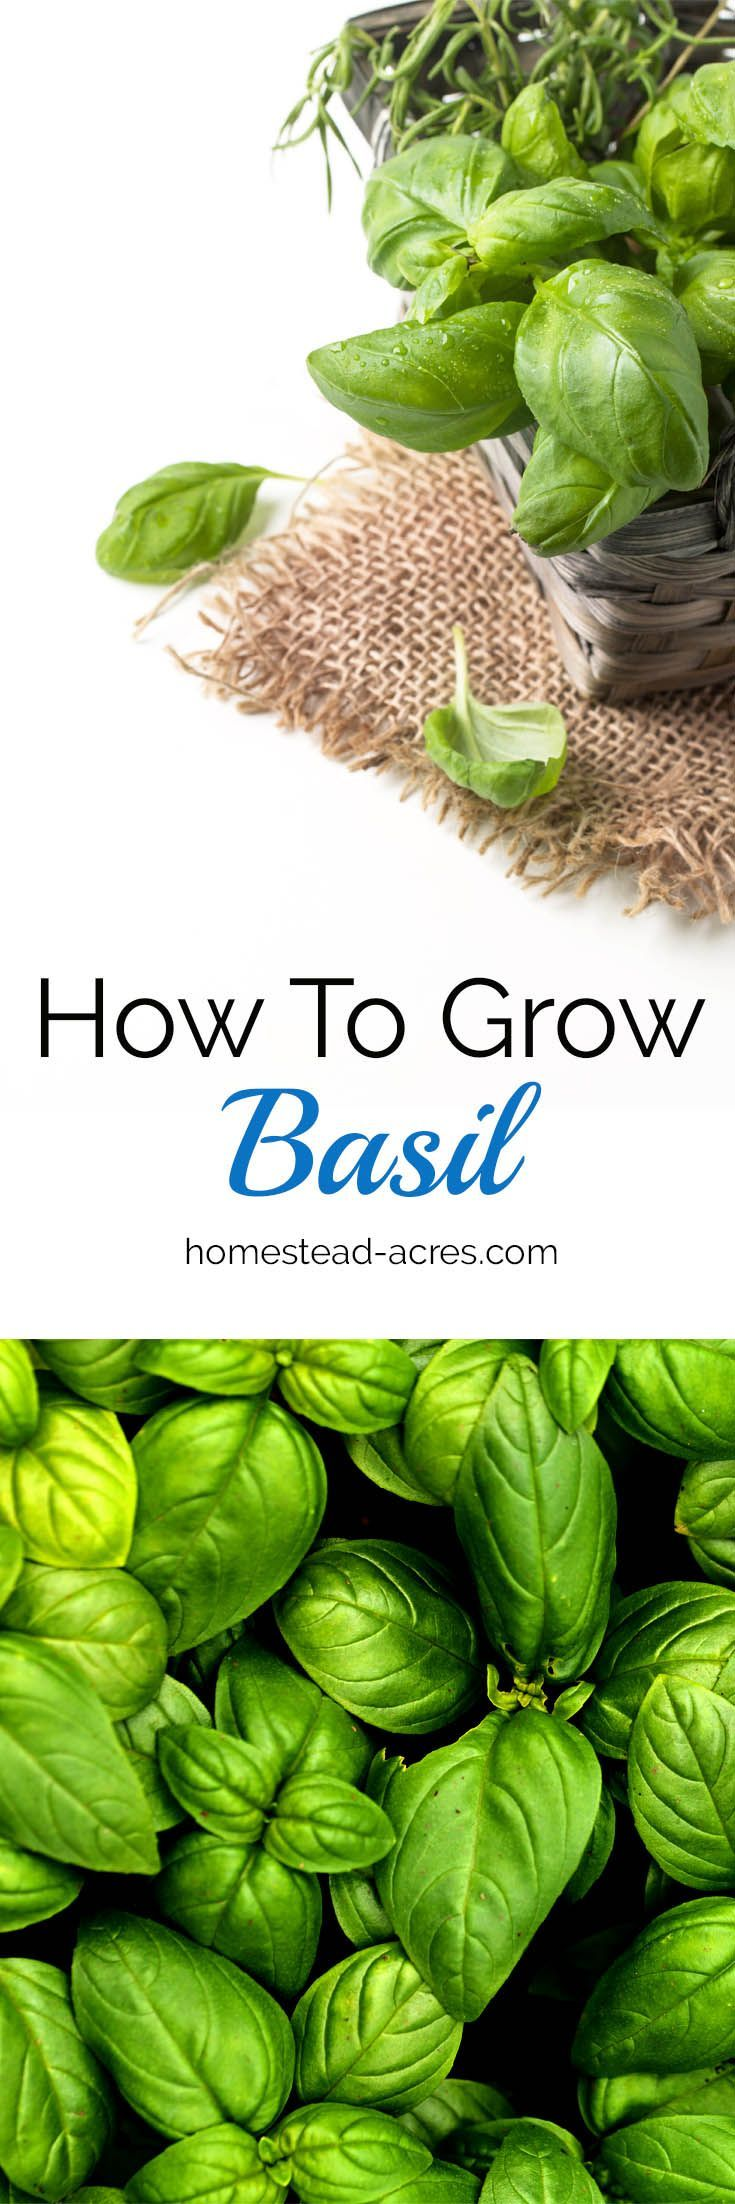 How To Grow Basil. Tips for planting, pruning, watering and harvesting basil plants in your garden.  https://www.homestead-acres.com/how-to-grow-basil/?utm_campaign=coschedule&utm_source=pinterest&utm_medium=Kim Mills | Homestead Acres | Homeschooling + H